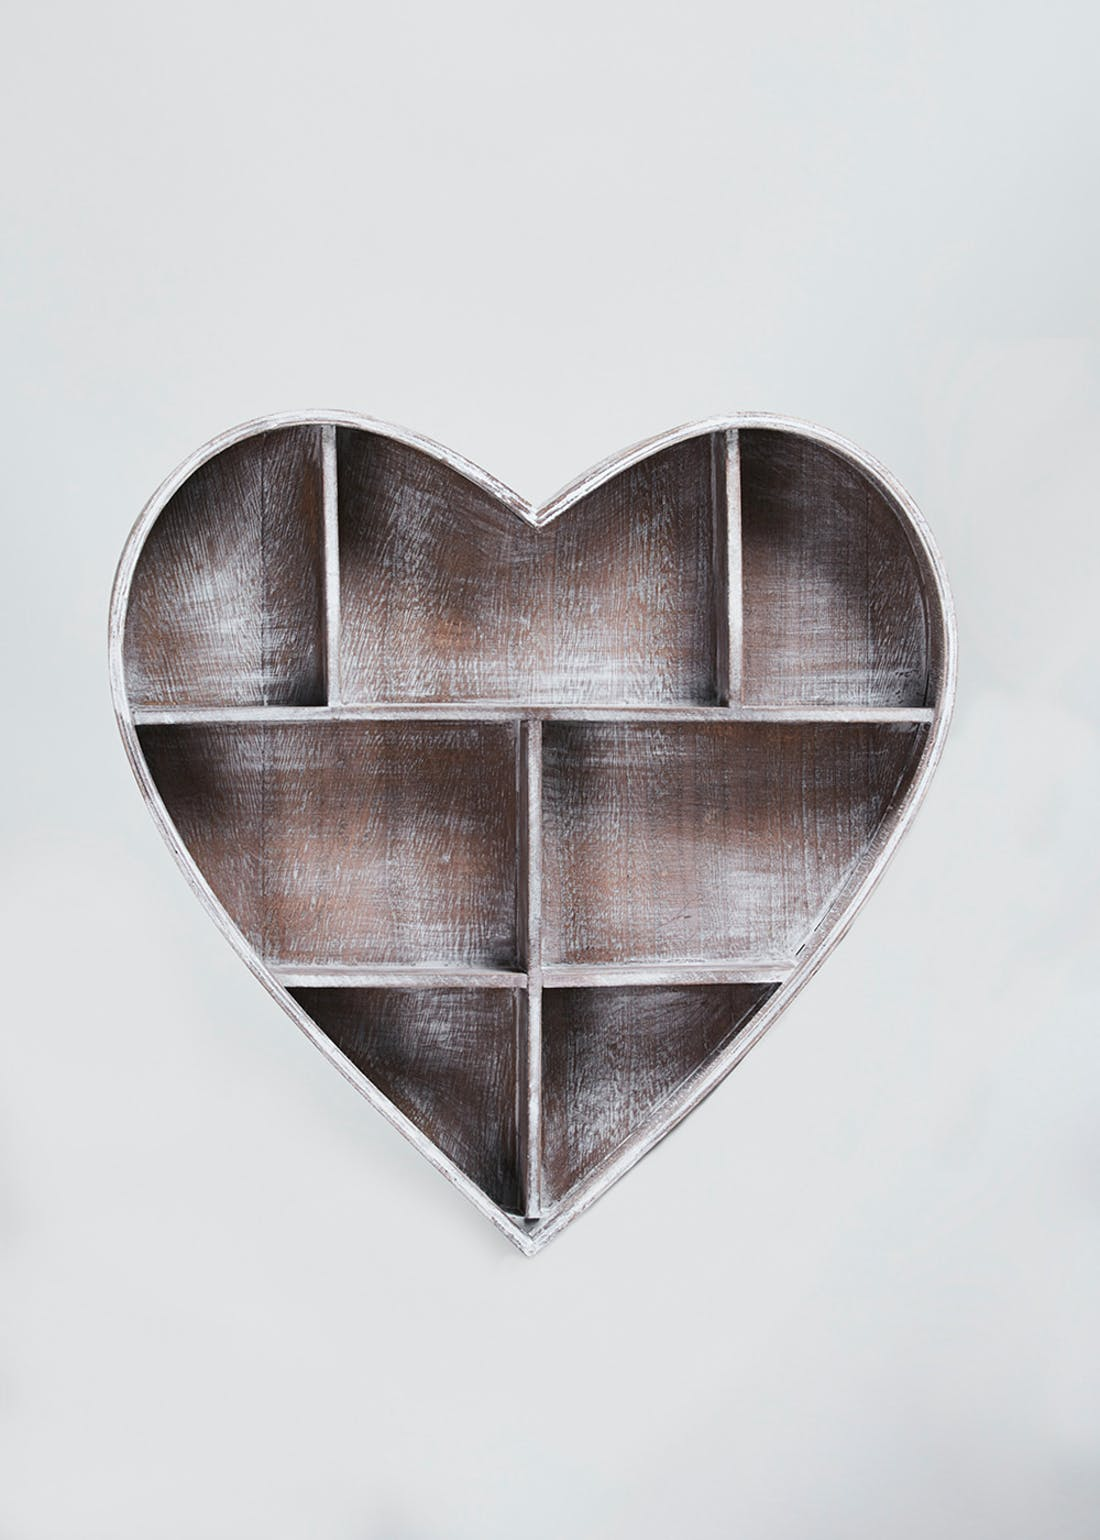 Heart Shaped Shelf (38cm x 33cm)